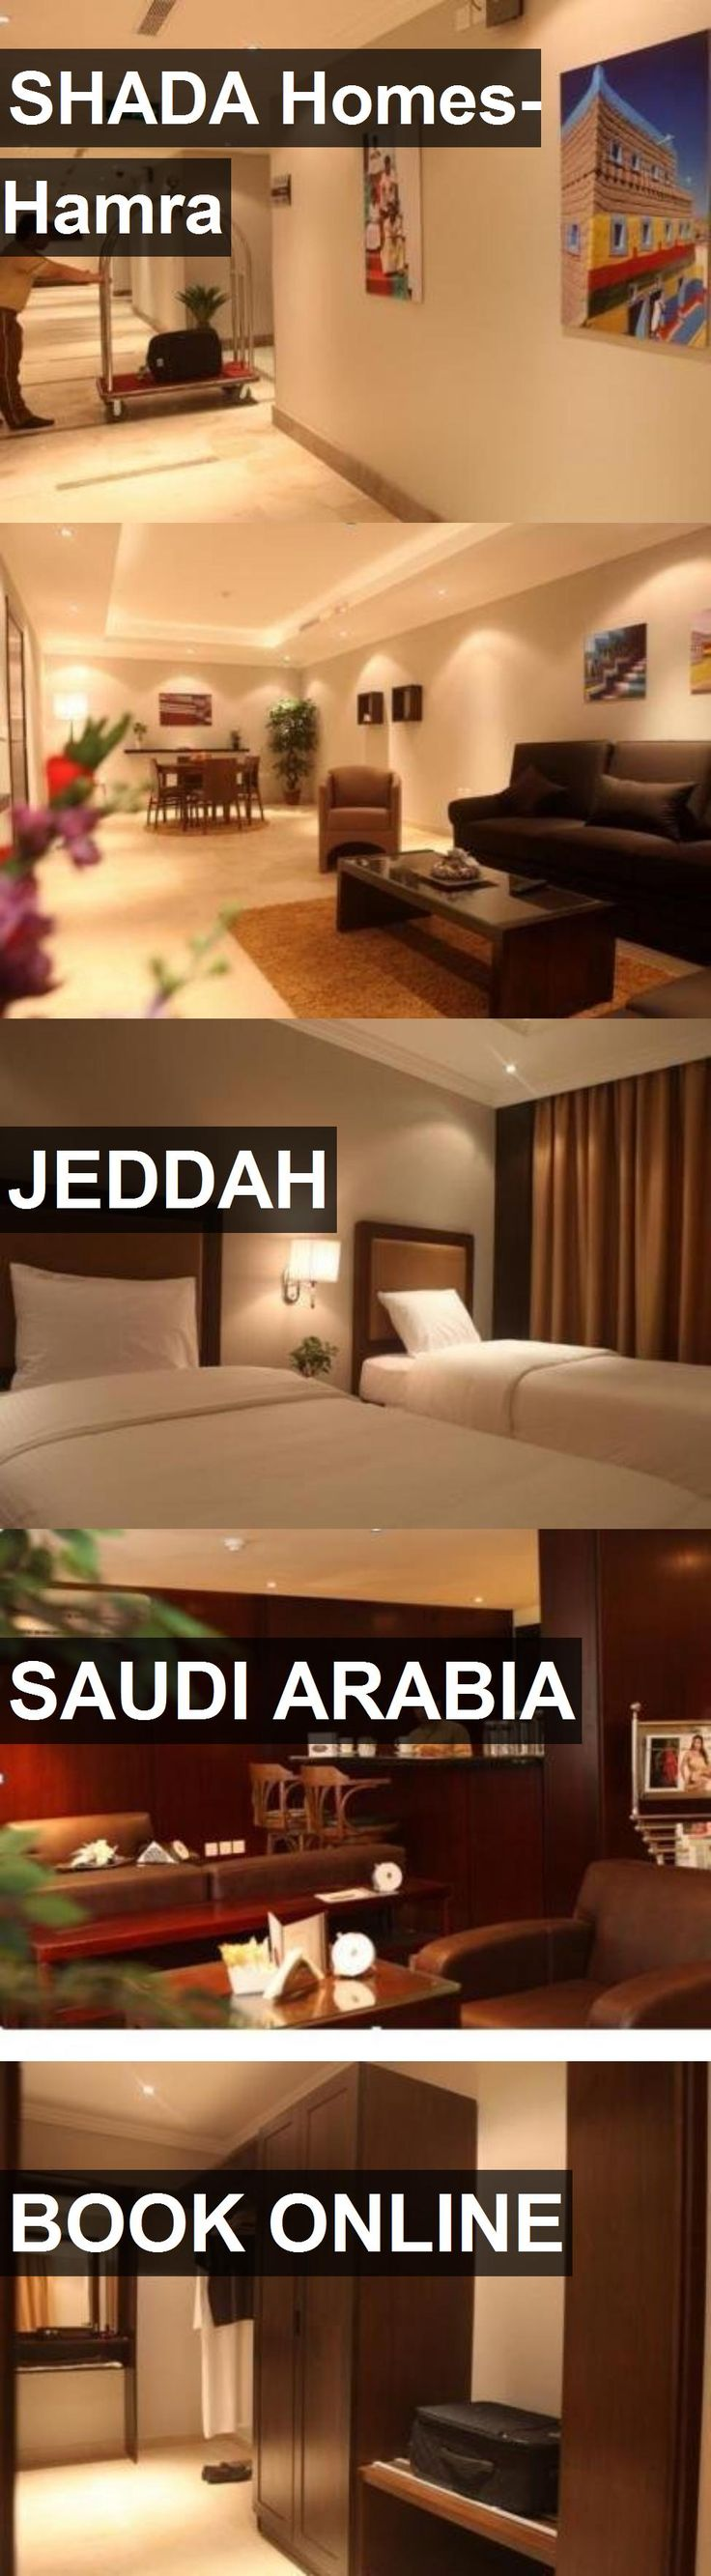 Hotel SHADA Homes- Hamra in Jeddah, Saudi Arabia. For more information, photos, reviews and best prices please follow the link. #SaudiArabia #Jeddah #travel #vacation #hotel